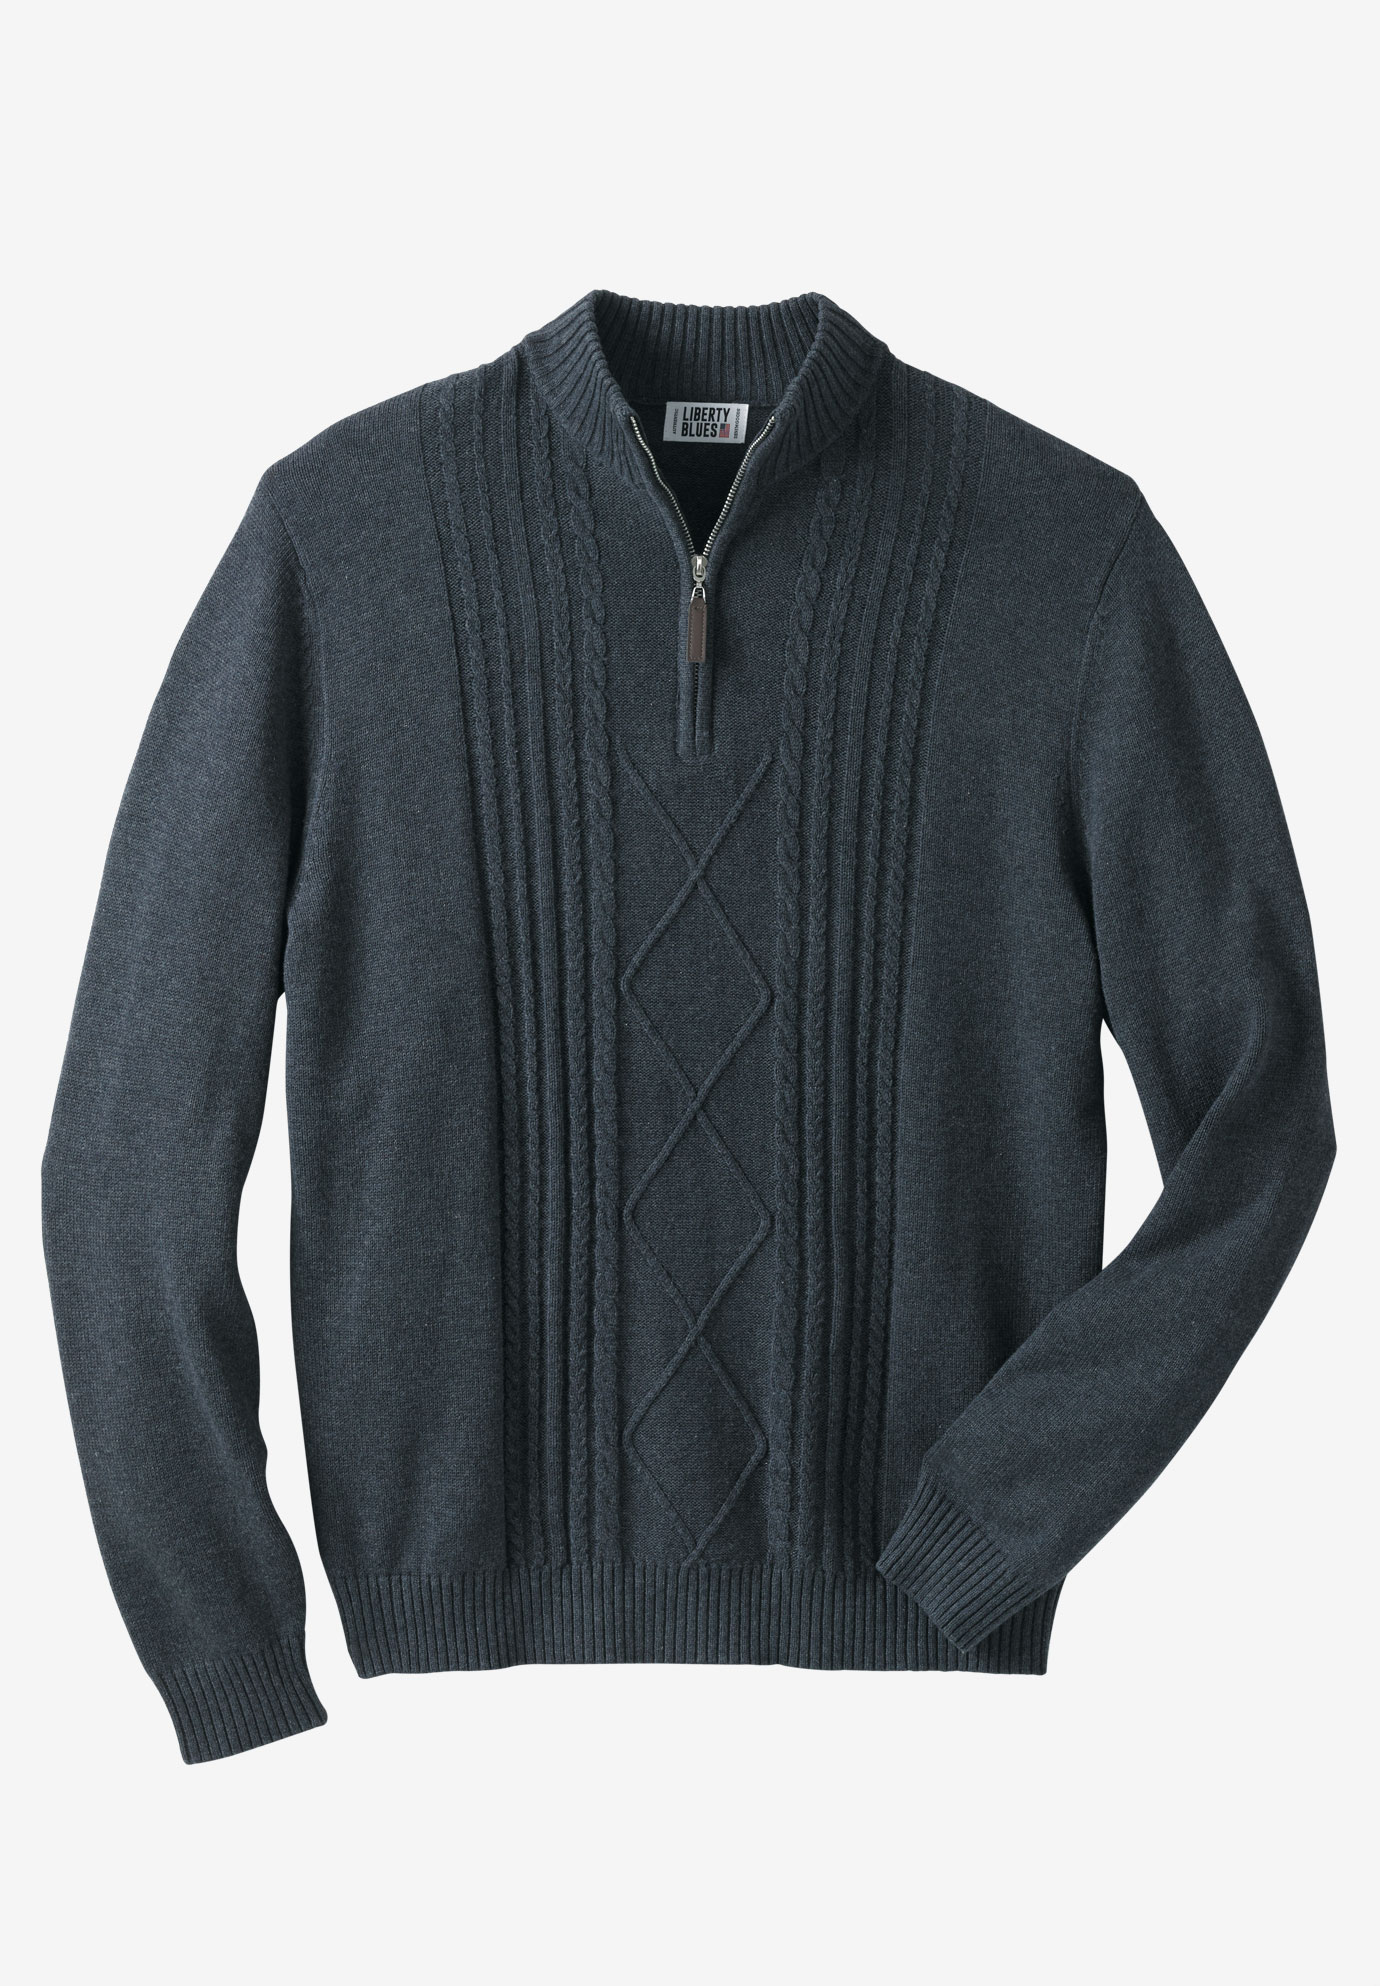 LIBERTY BLUES™ SHOREMAN'S 1/4 ZIP CABLE KNIT SWEATER,